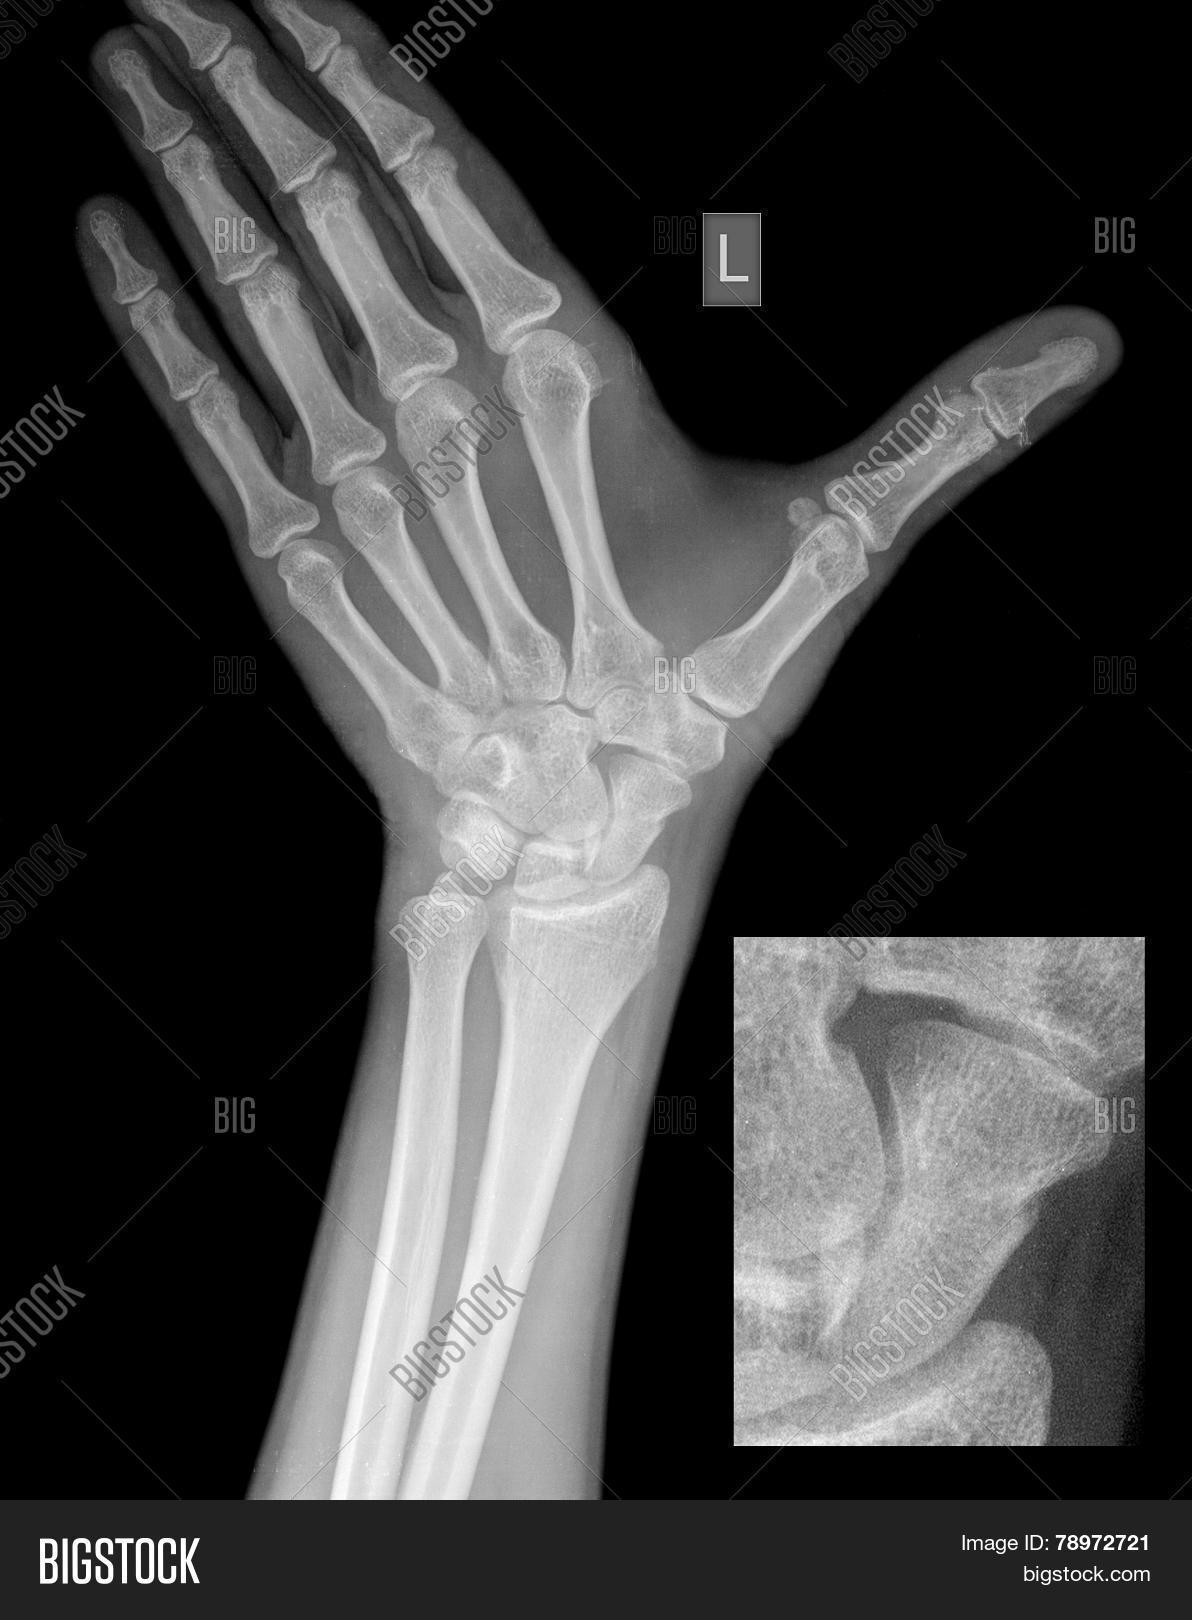 Hand Wrist X-ray, Image & Photo (Free Trial) | Bigstock